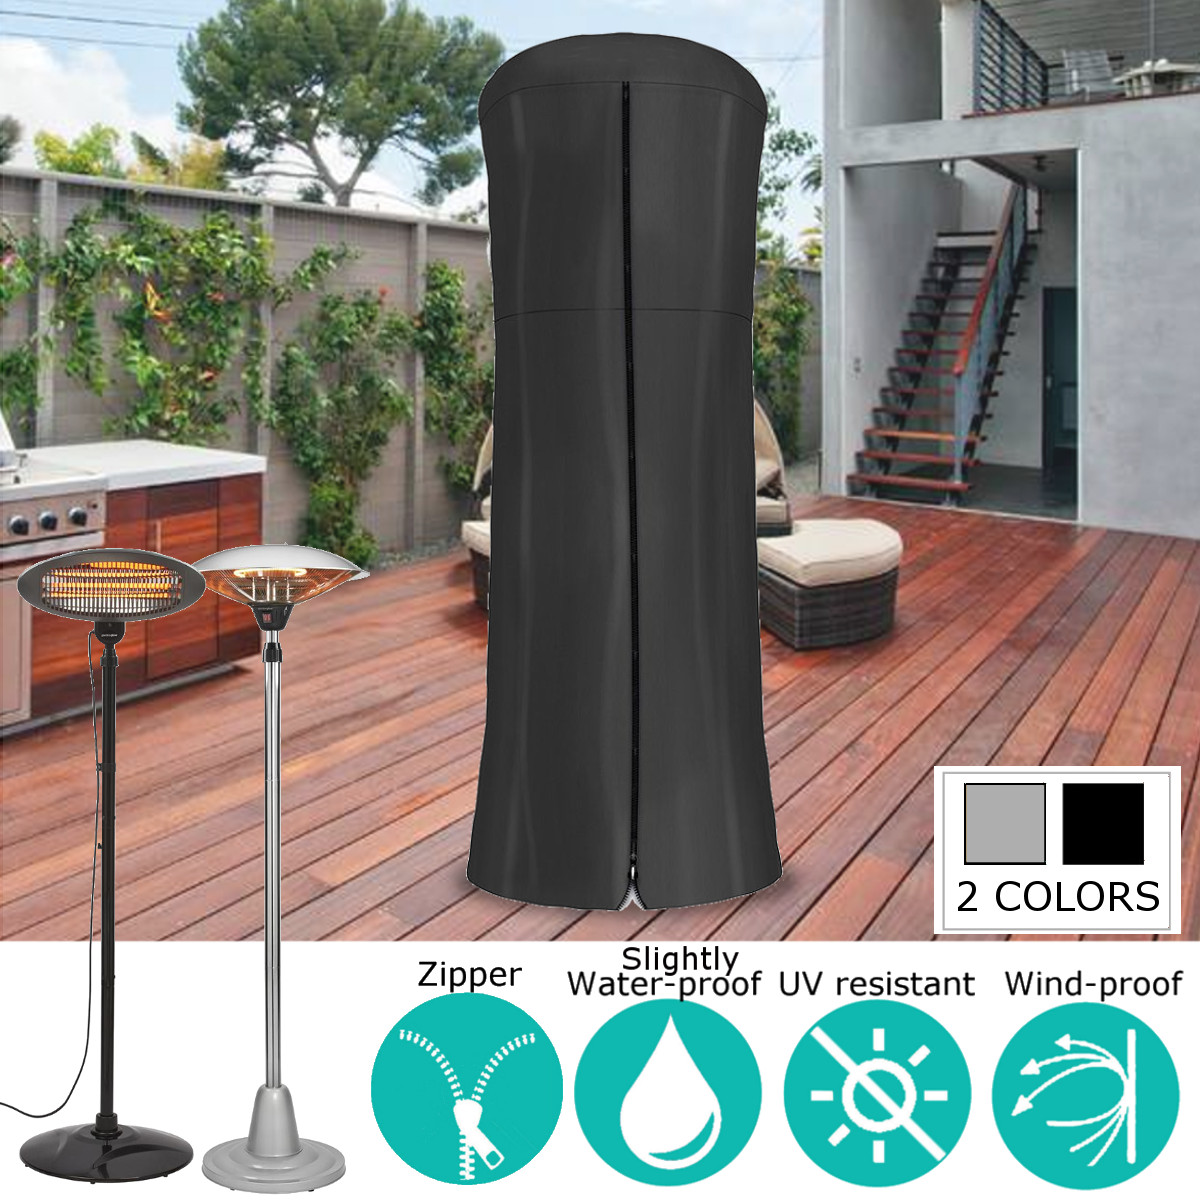 Admirable 86 6X38 Patio Heater Heavy Duty Waterproof Heater Vinyl Cover Garden Outdoor Furniture Cover Creativecarmelina Interior Chair Design Creativecarmelinacom